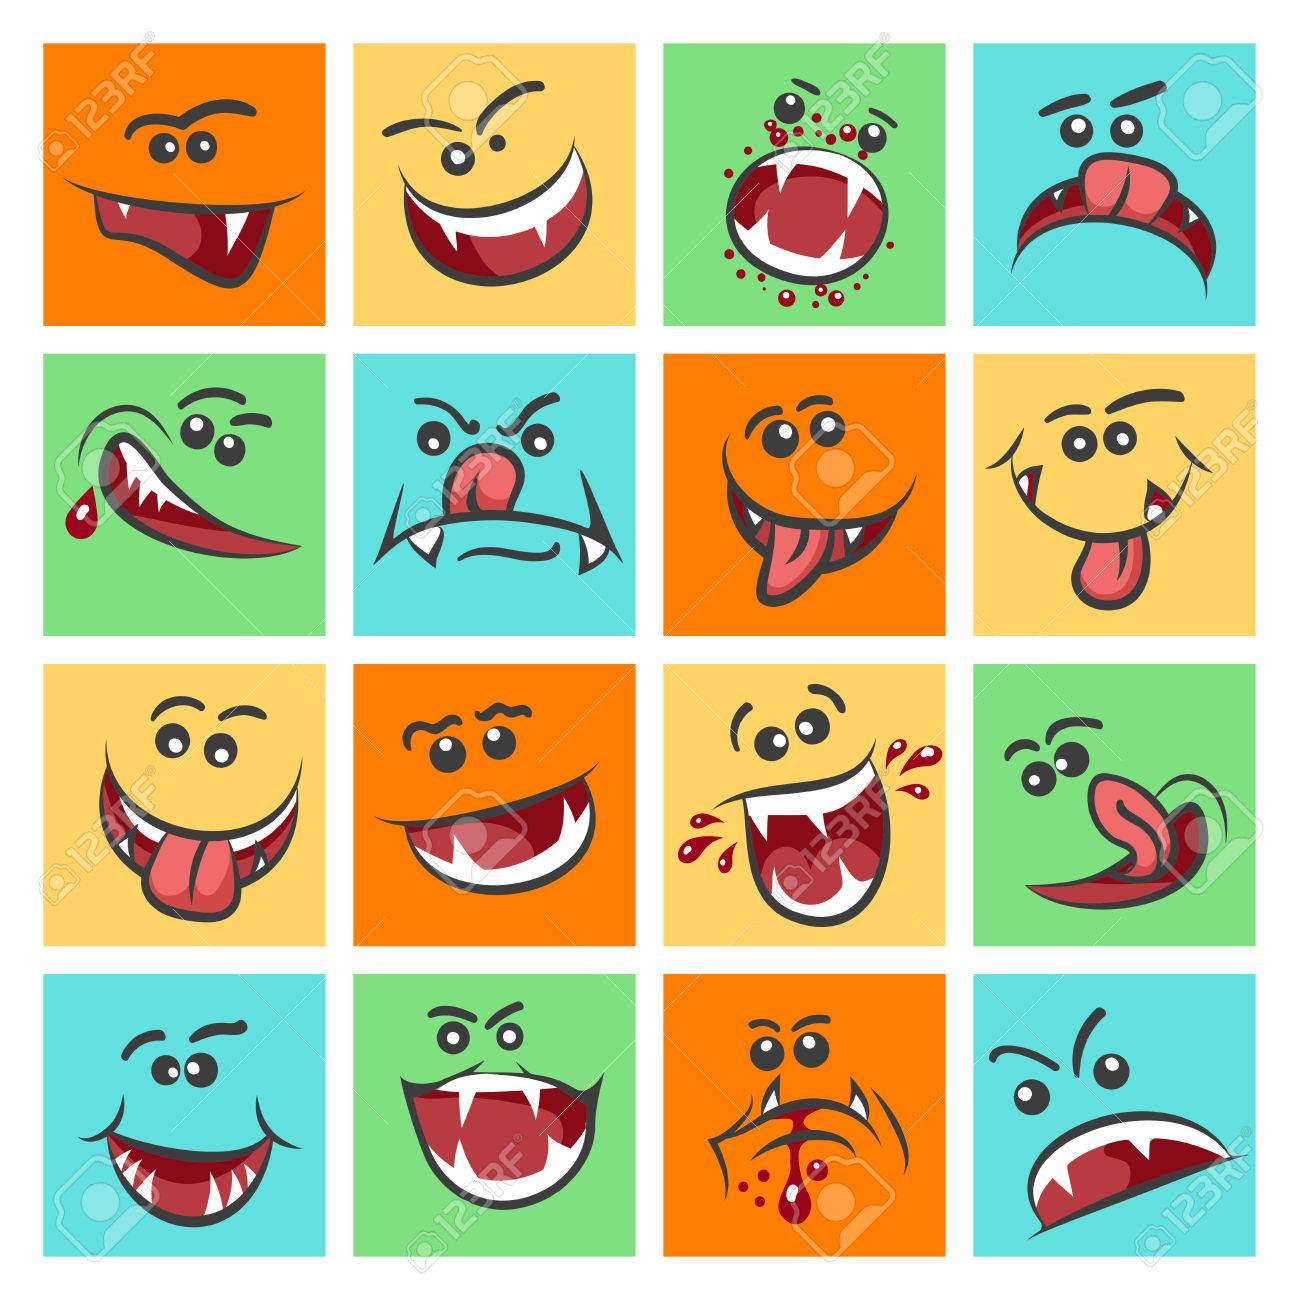 Colorful Emoticon Faces Vector Illustration Cute Mood Icons